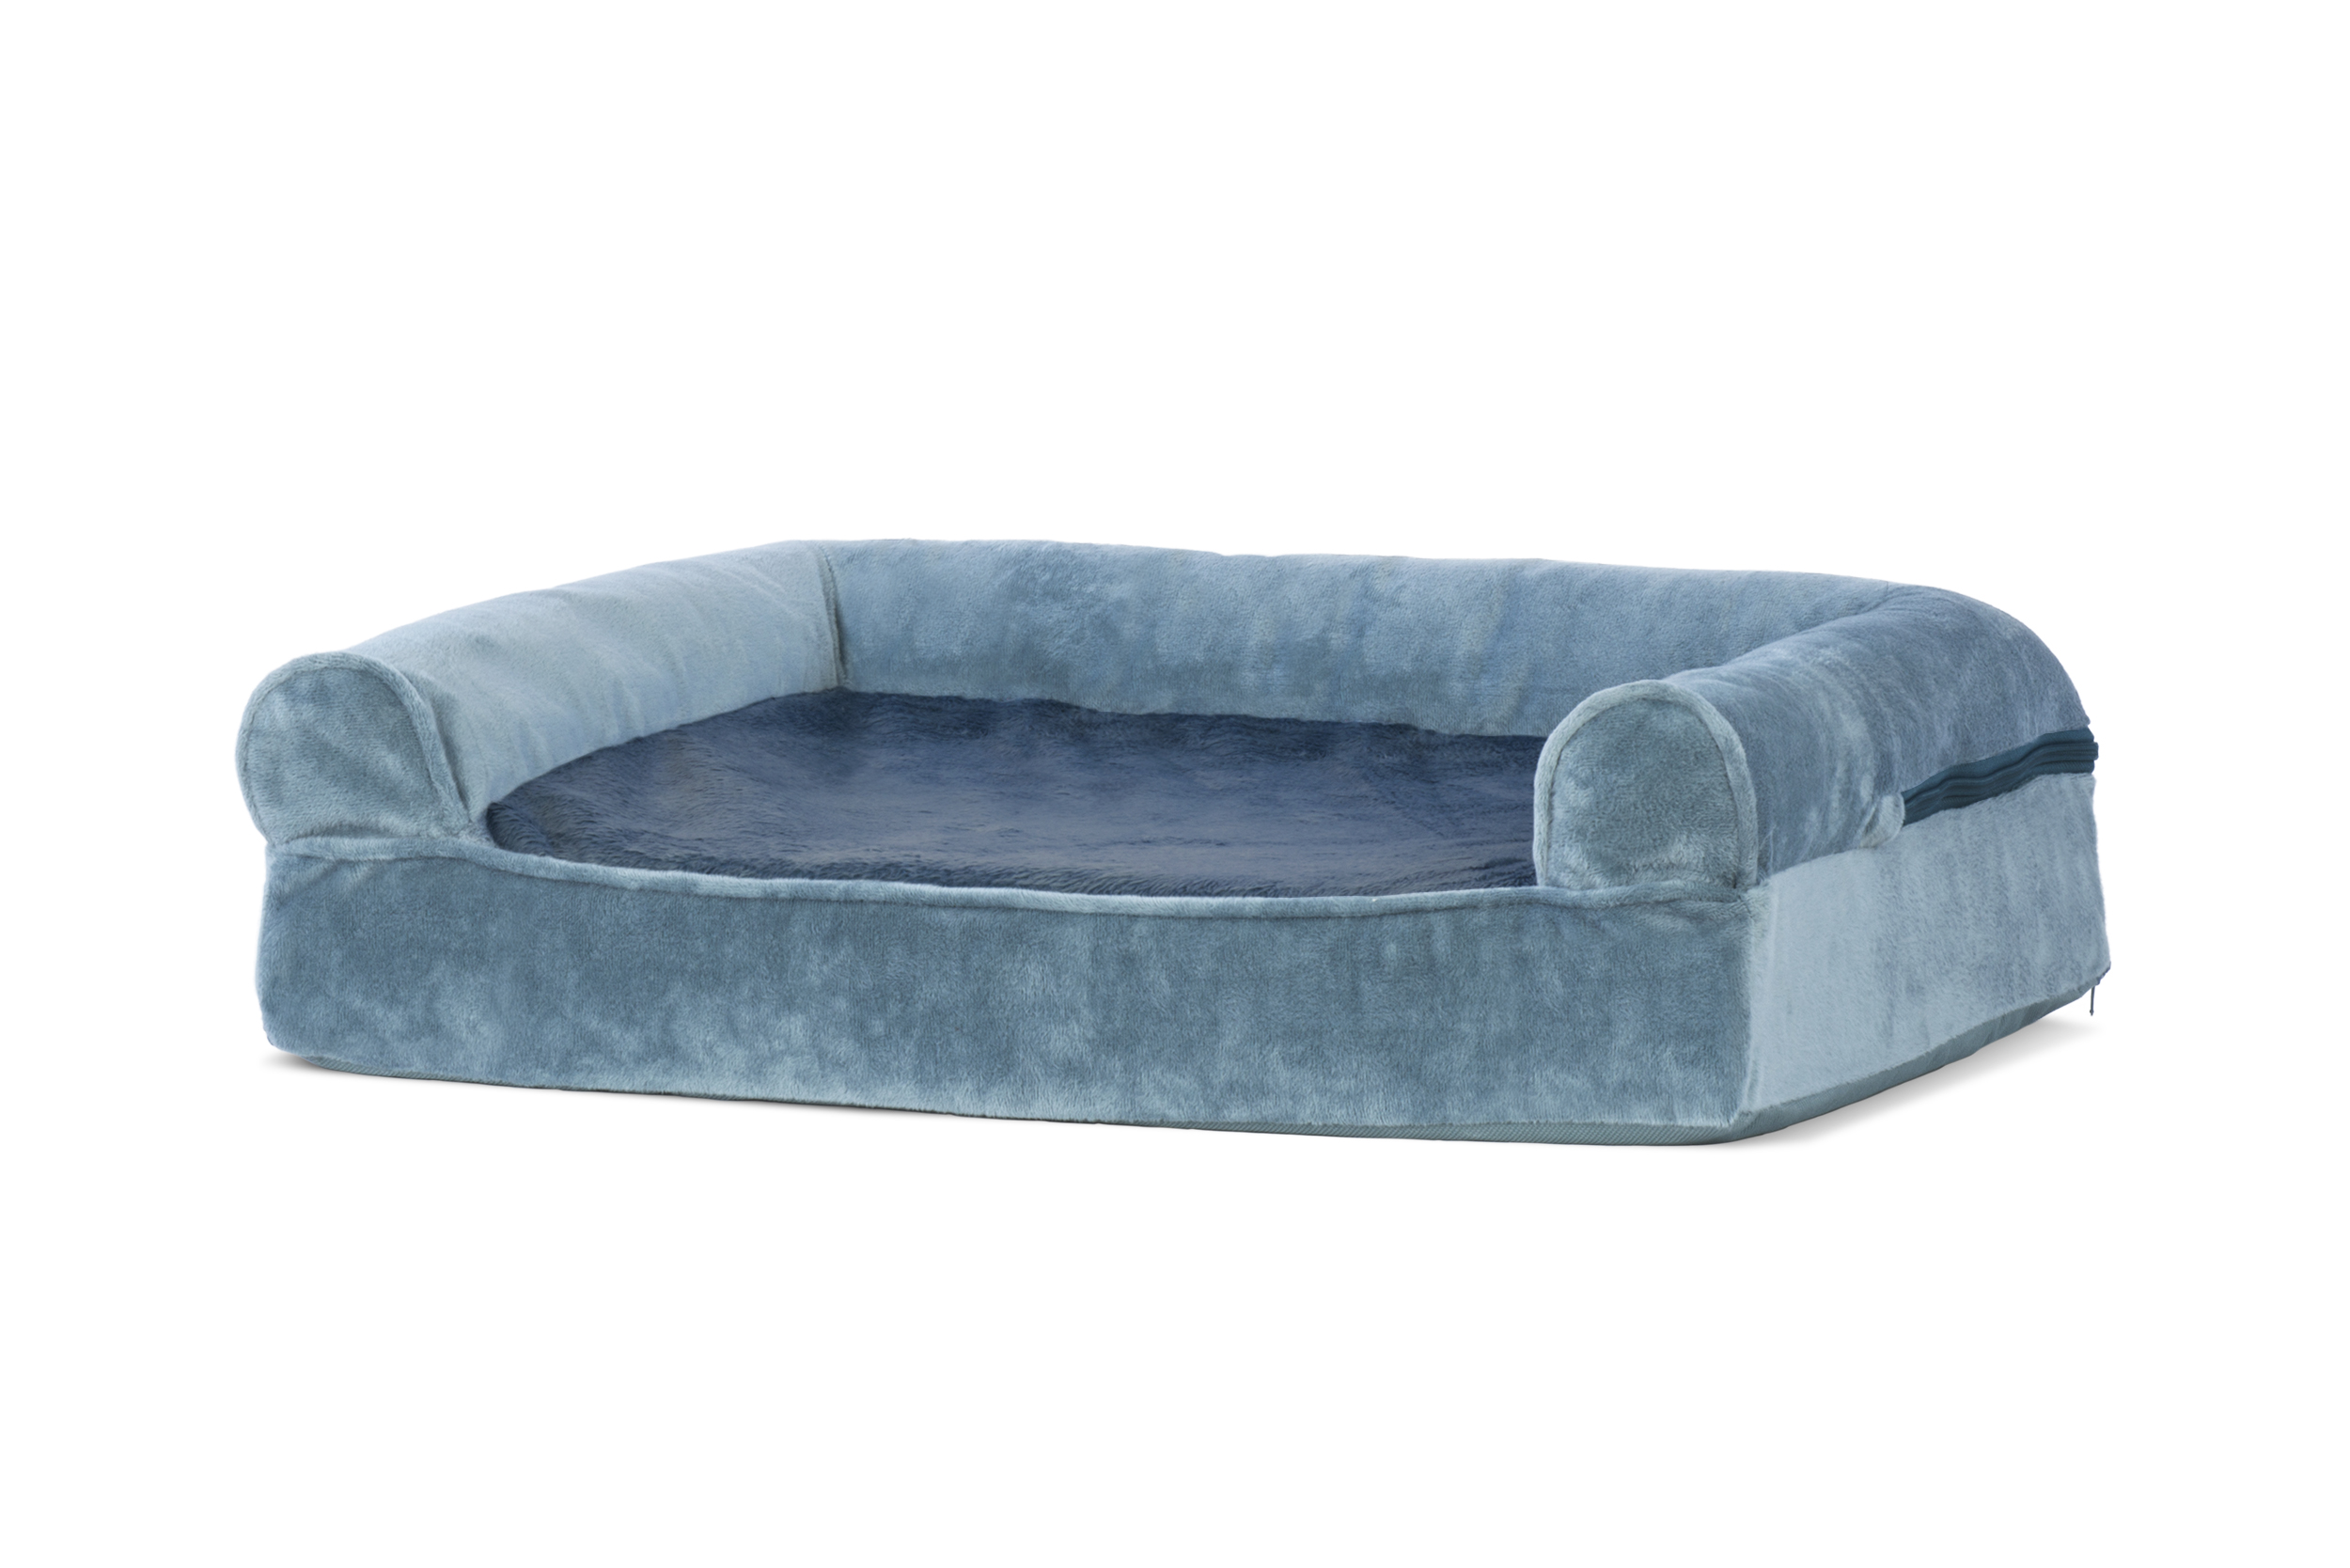 orthopedic sofa dimensions of queen bed faux fur and velvet pet dog couch ebay